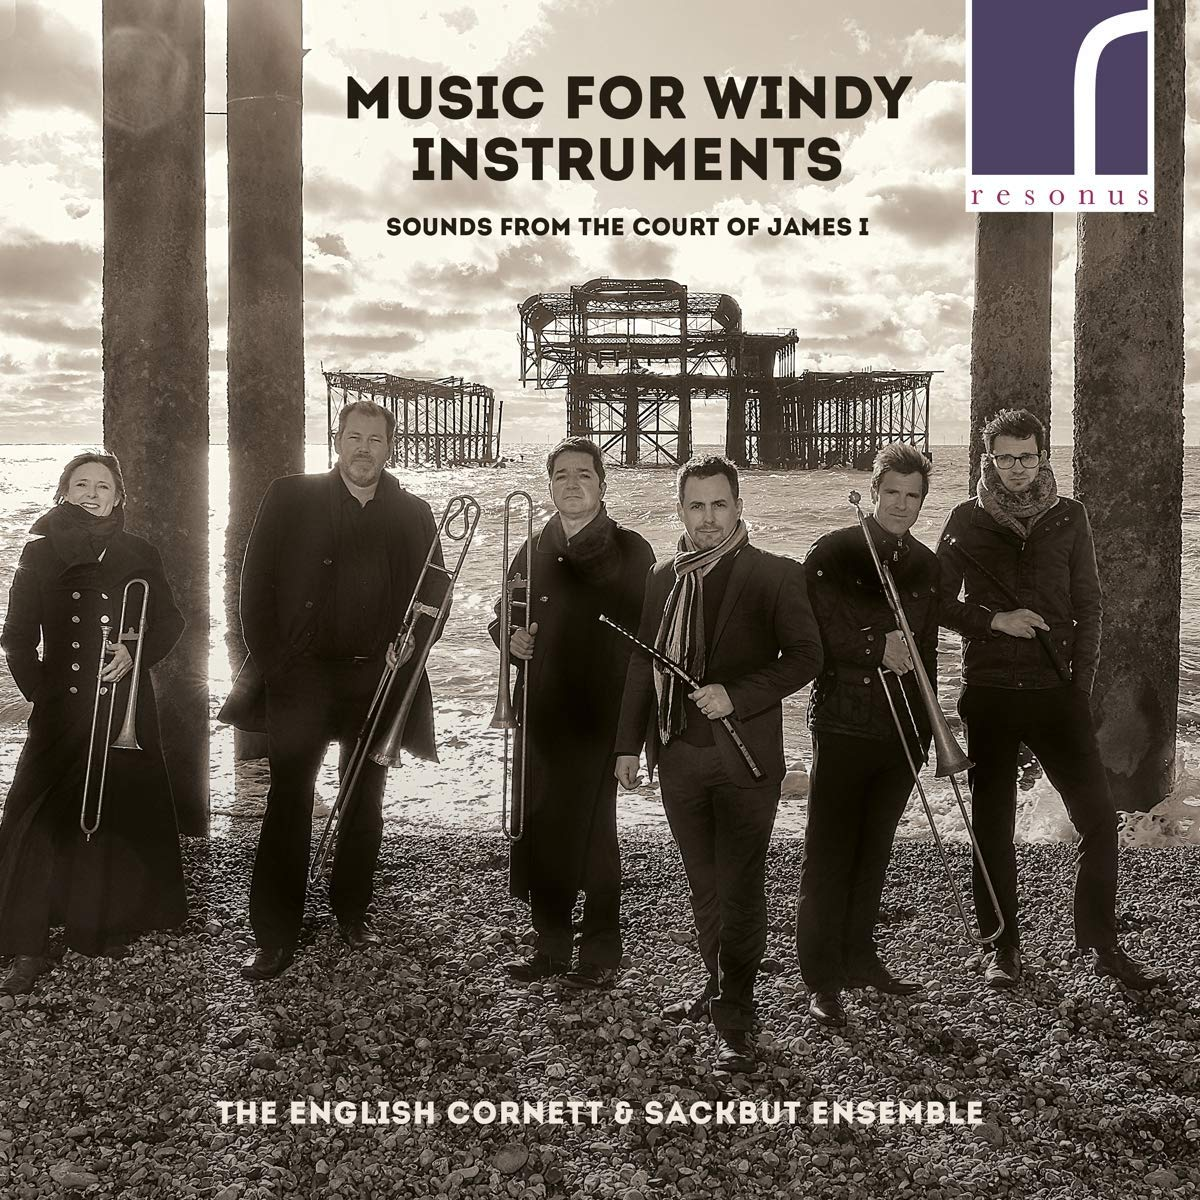 Windy Instruments